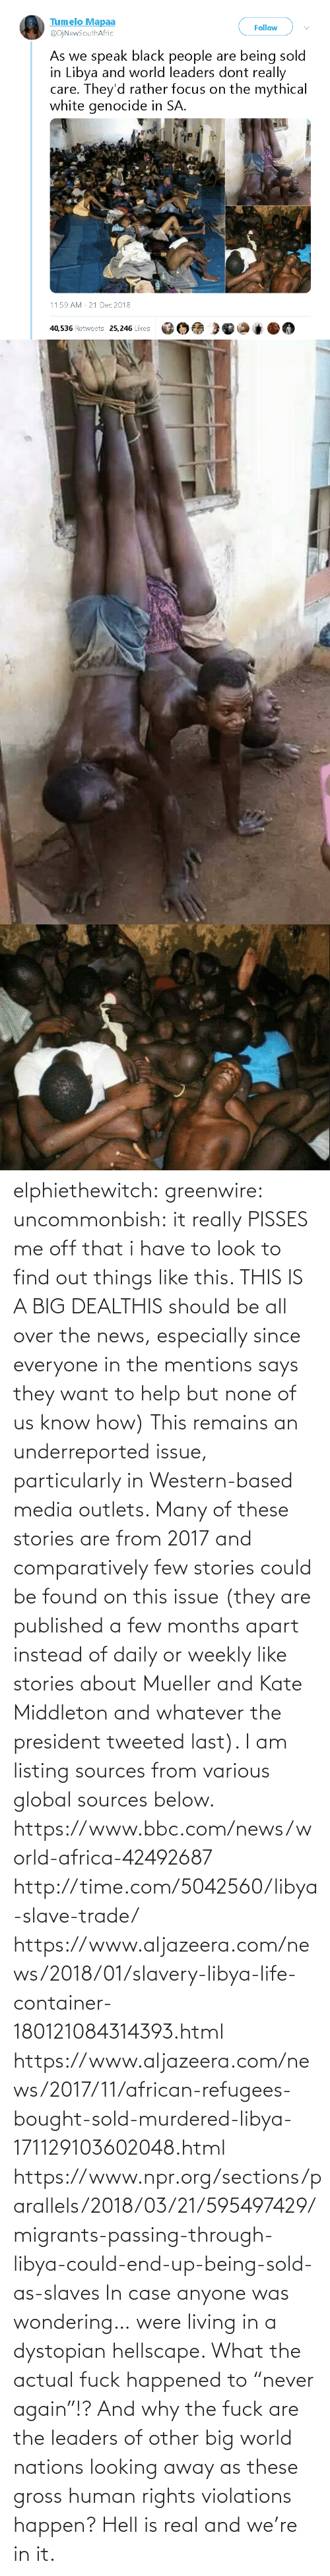 "this is: elphiethewitch: greenwire:  uncommonbish:  it really PISSES me off that i have to look to find out things like this. THIS IS A BIG DEALTHIS should be all over the news, especially since everyone in the mentions says they want to help but none of us know how)  This remains an underreported issue, particularly in Western-based media outlets. Many of these stories are from 2017 and comparatively few stories could be found on this issue (they are published a few months apart instead of daily or weekly like stories about Mueller and Kate Middleton and whatever the president tweeted last). I am listing sources from various global sources below.  https://www.bbc.com/news/world-africa-42492687 http://time.com/5042560/libya-slave-trade/ https://www.aljazeera.com/news/2018/01/slavery-libya-life-container-180121084314393.html https://www.aljazeera.com/news/2017/11/african-refugees-bought-sold-murdered-libya-171129103602048.html https://www.npr.org/sections/parallels/2018/03/21/595497429/migrants-passing-through-libya-could-end-up-being-sold-as-slaves   In case anyone was wondering… were living in a dystopian hellscape.  What the actual fuck happened to ""never again""!? And why the fuck are the leaders of other big world nations looking away as these gross human rights violations happen?  Hell is real and we're in it."